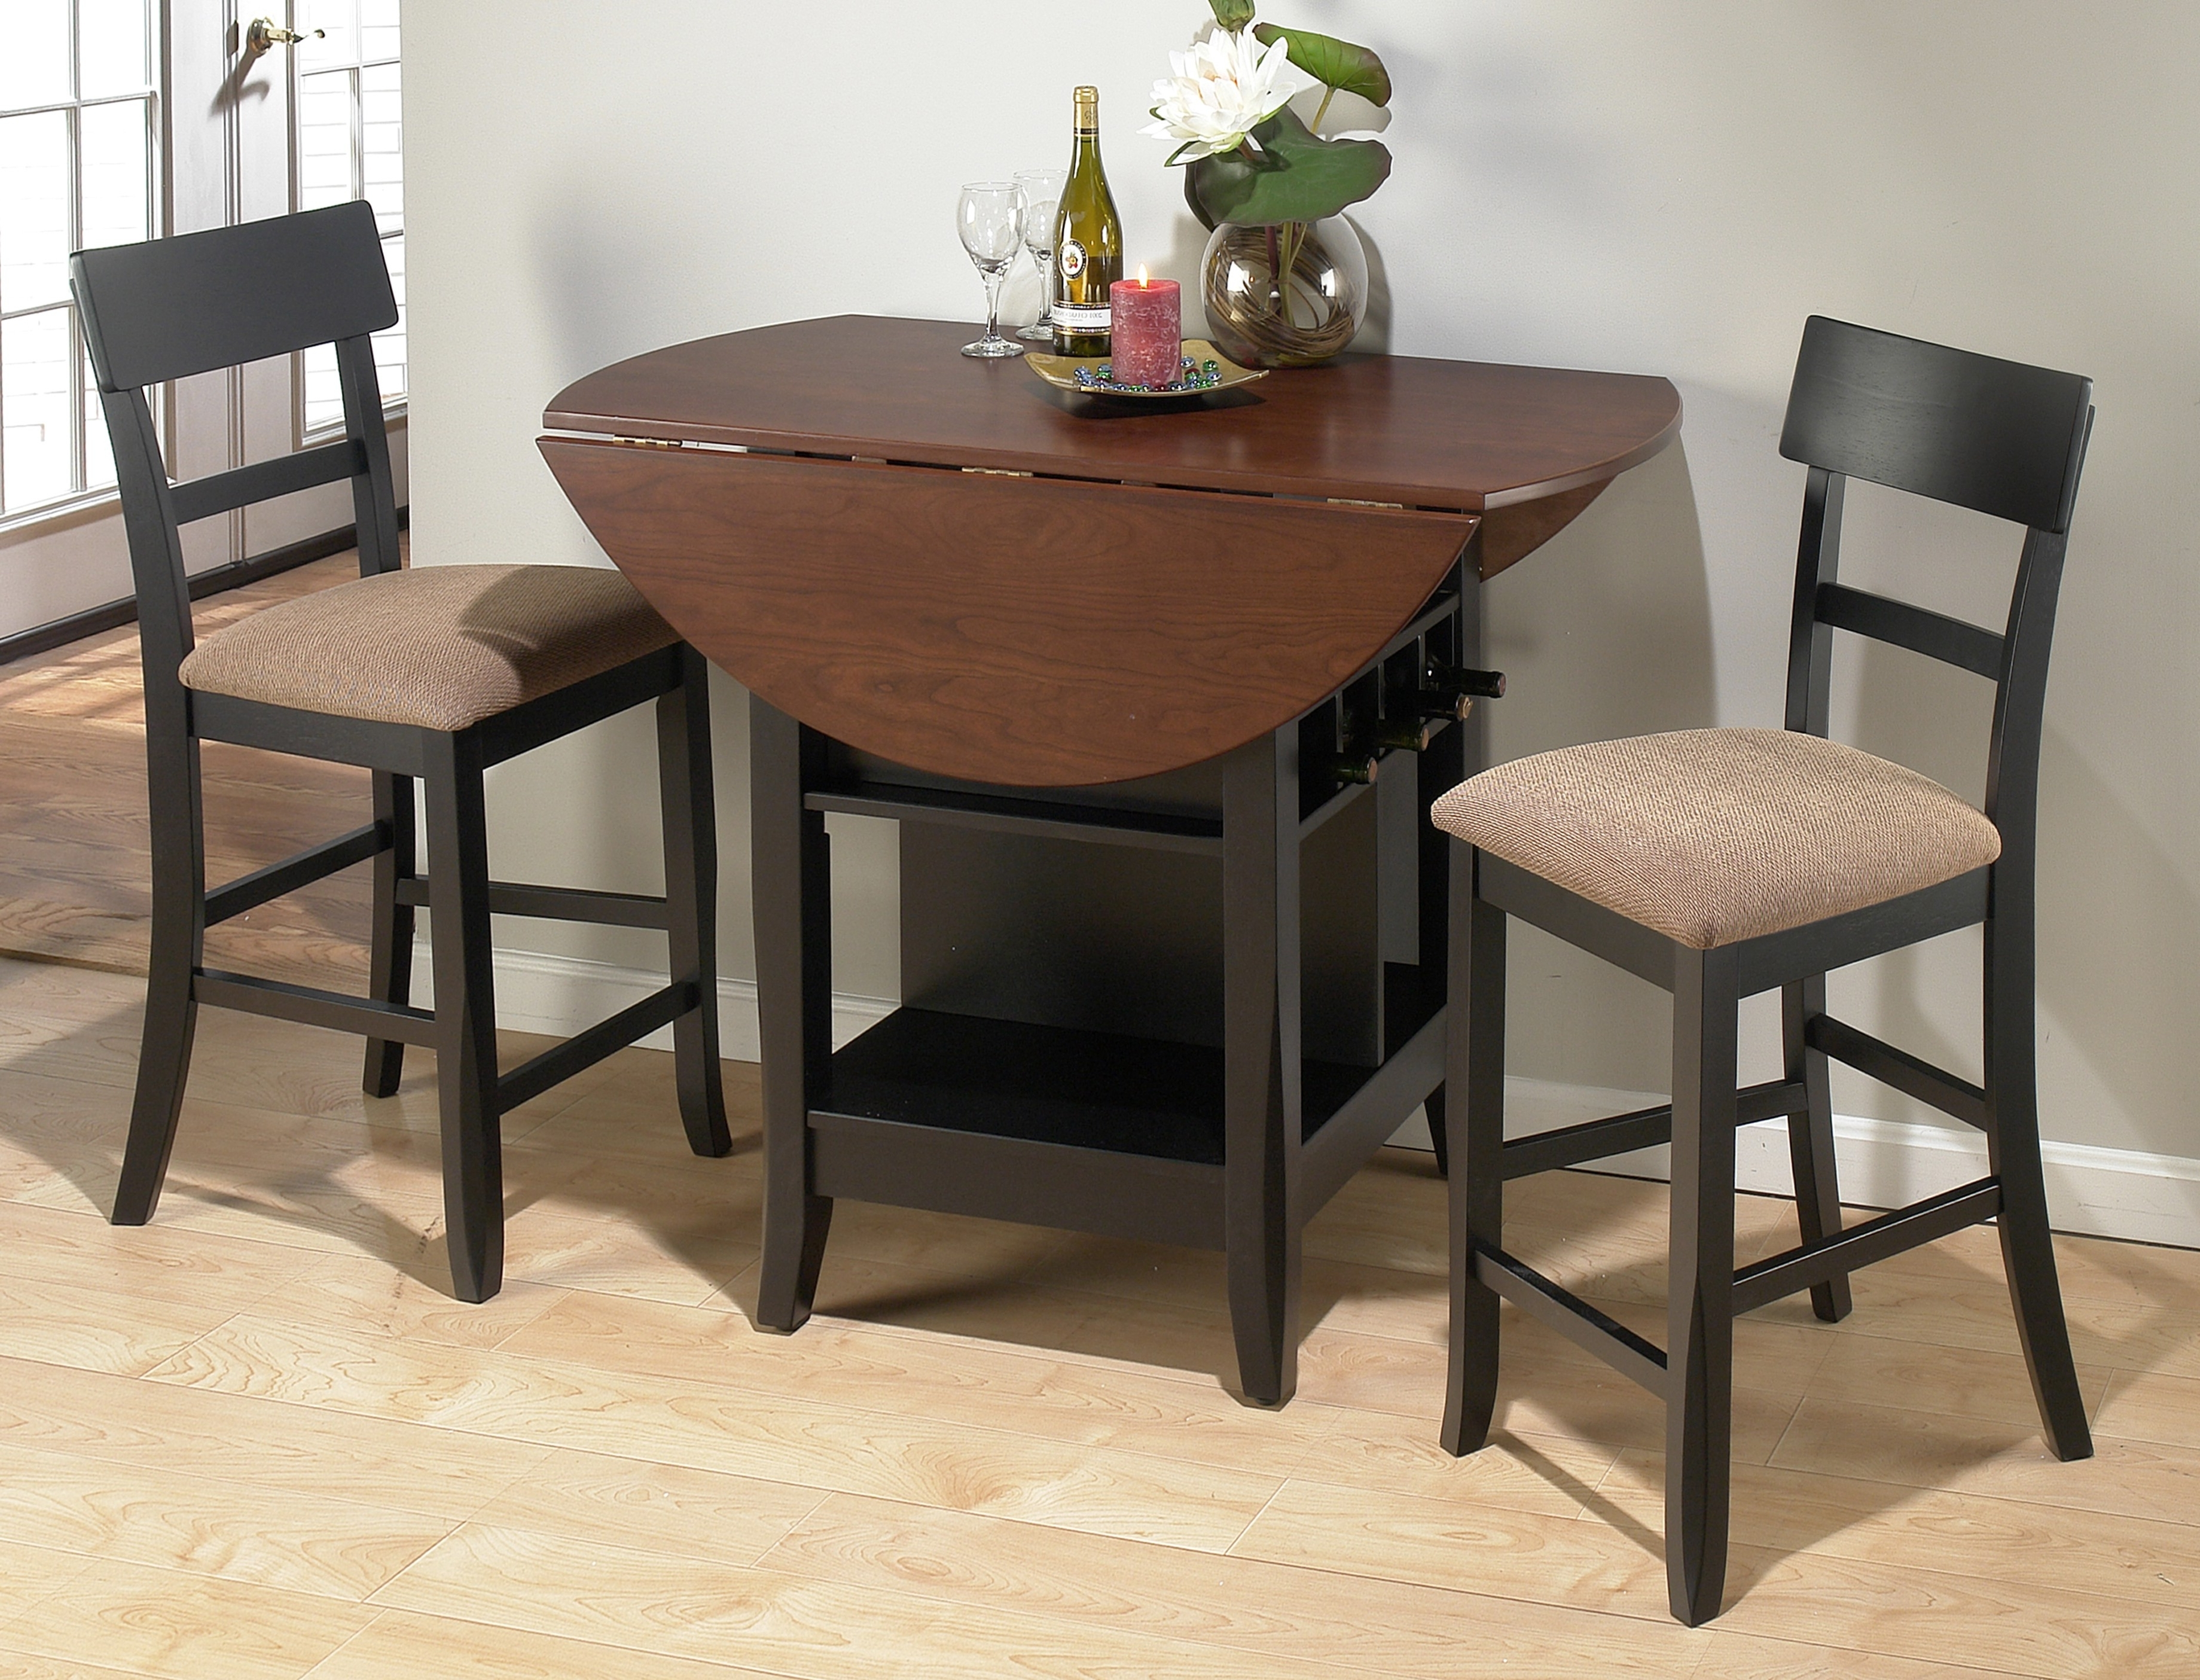 Two Seat Dining Tables Throughout Most Up To Date Dining Room Kitchen Table Sets For Small Areas Small Dining Table (View 12 of 25)